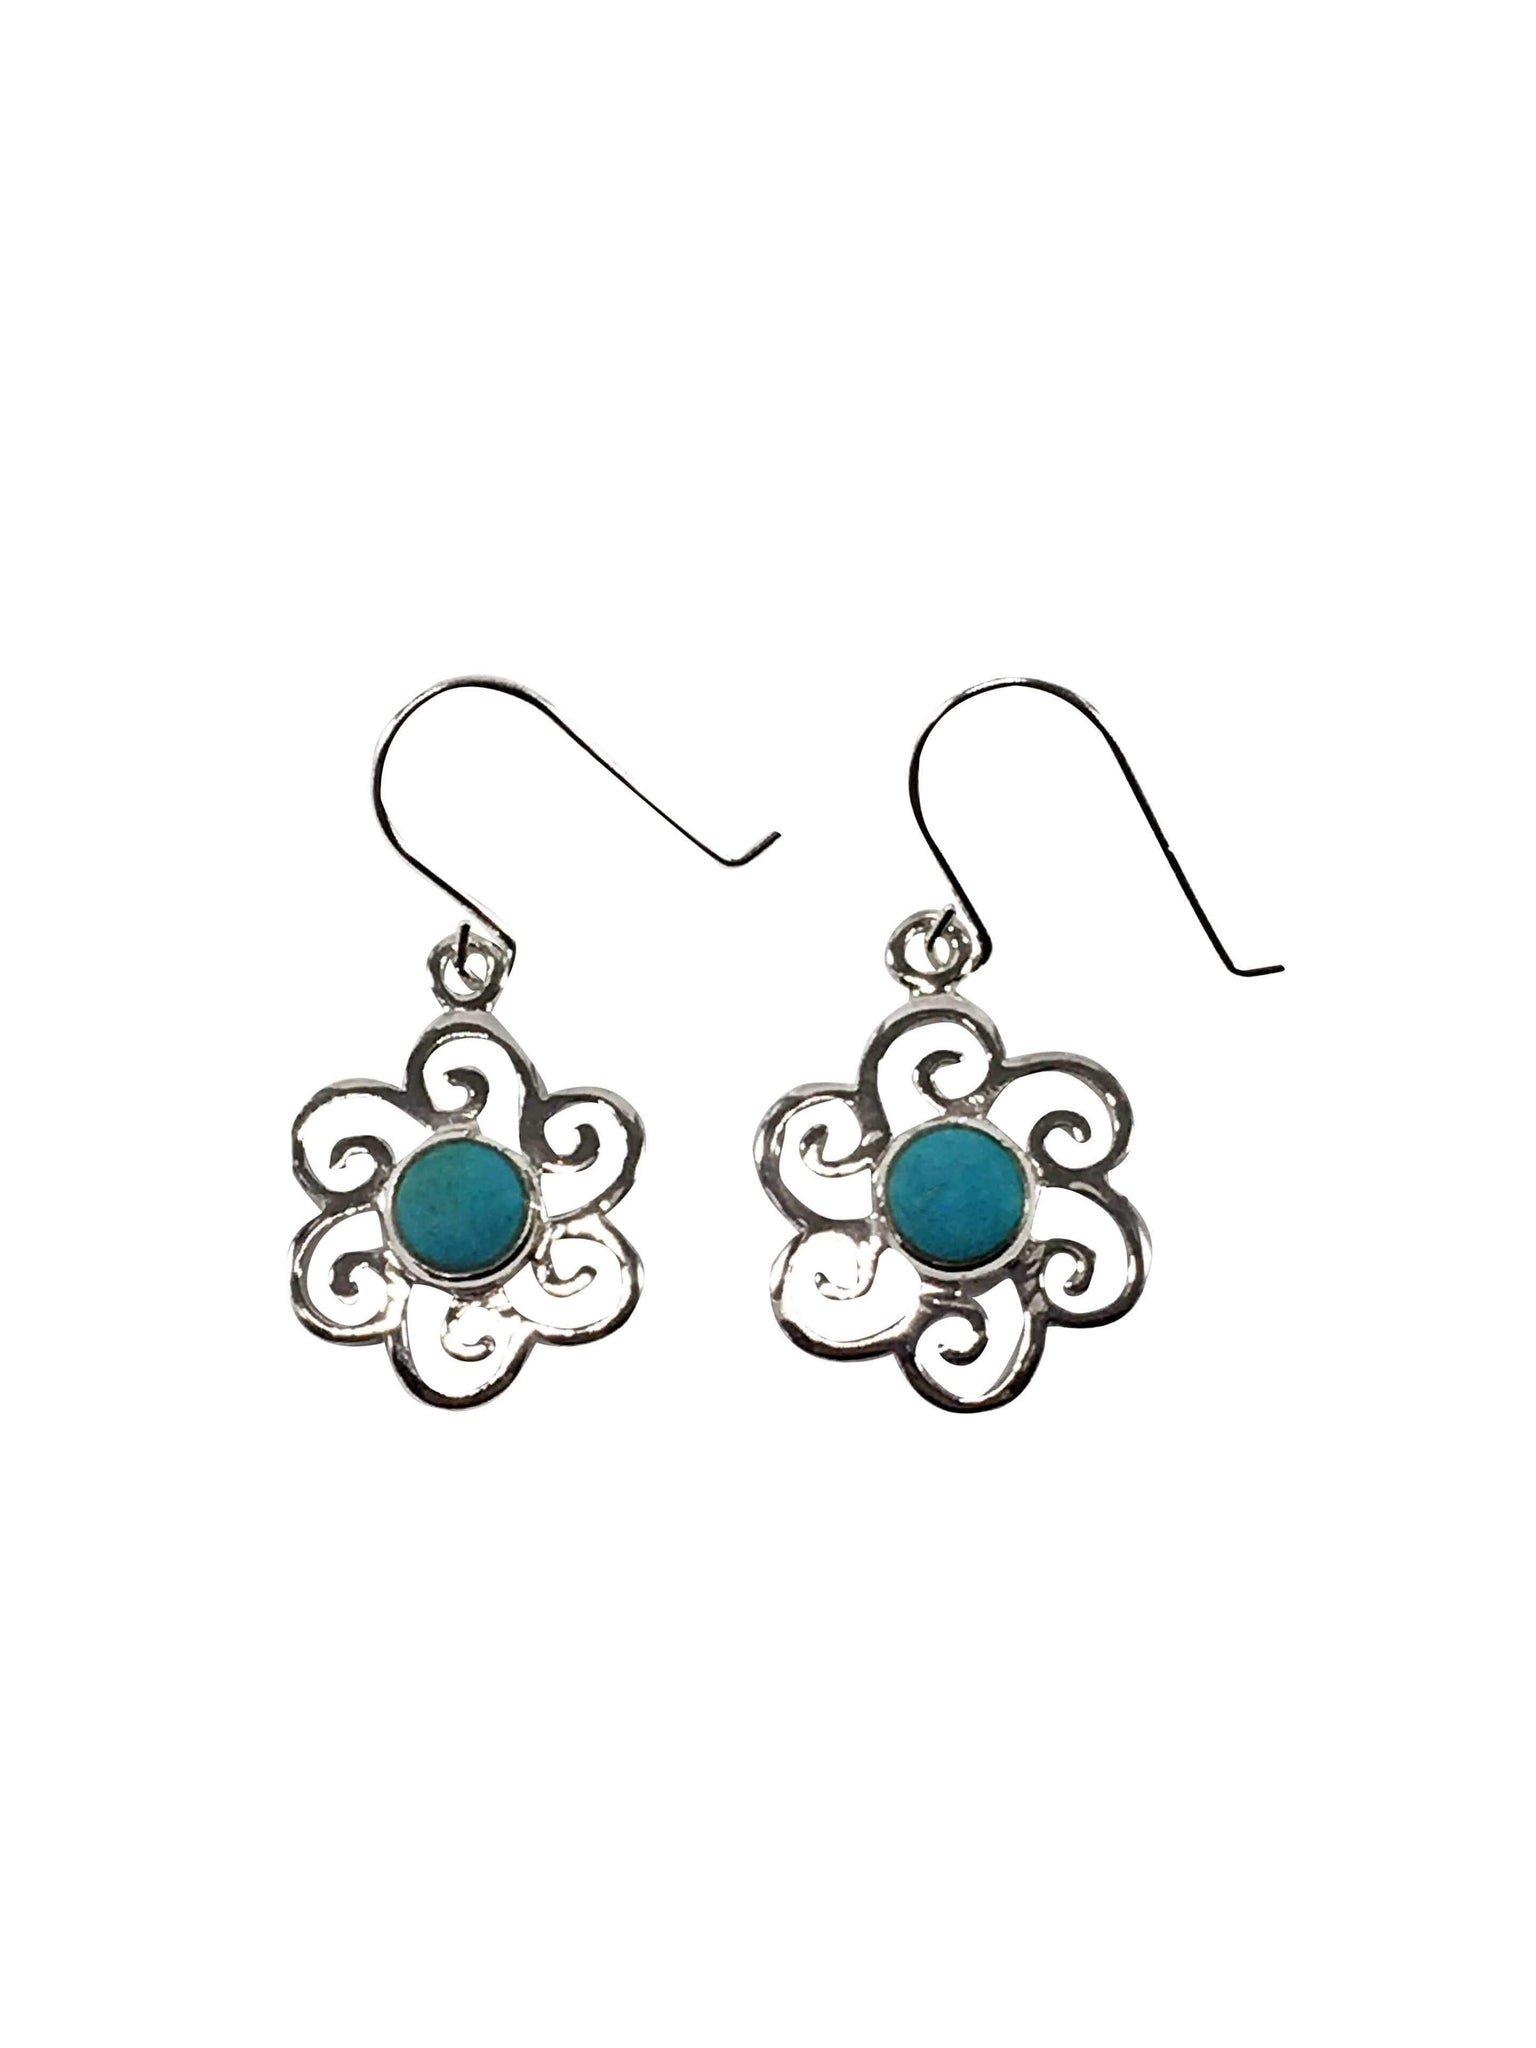 Handmade Turquoise Gemstone Flower Earrings